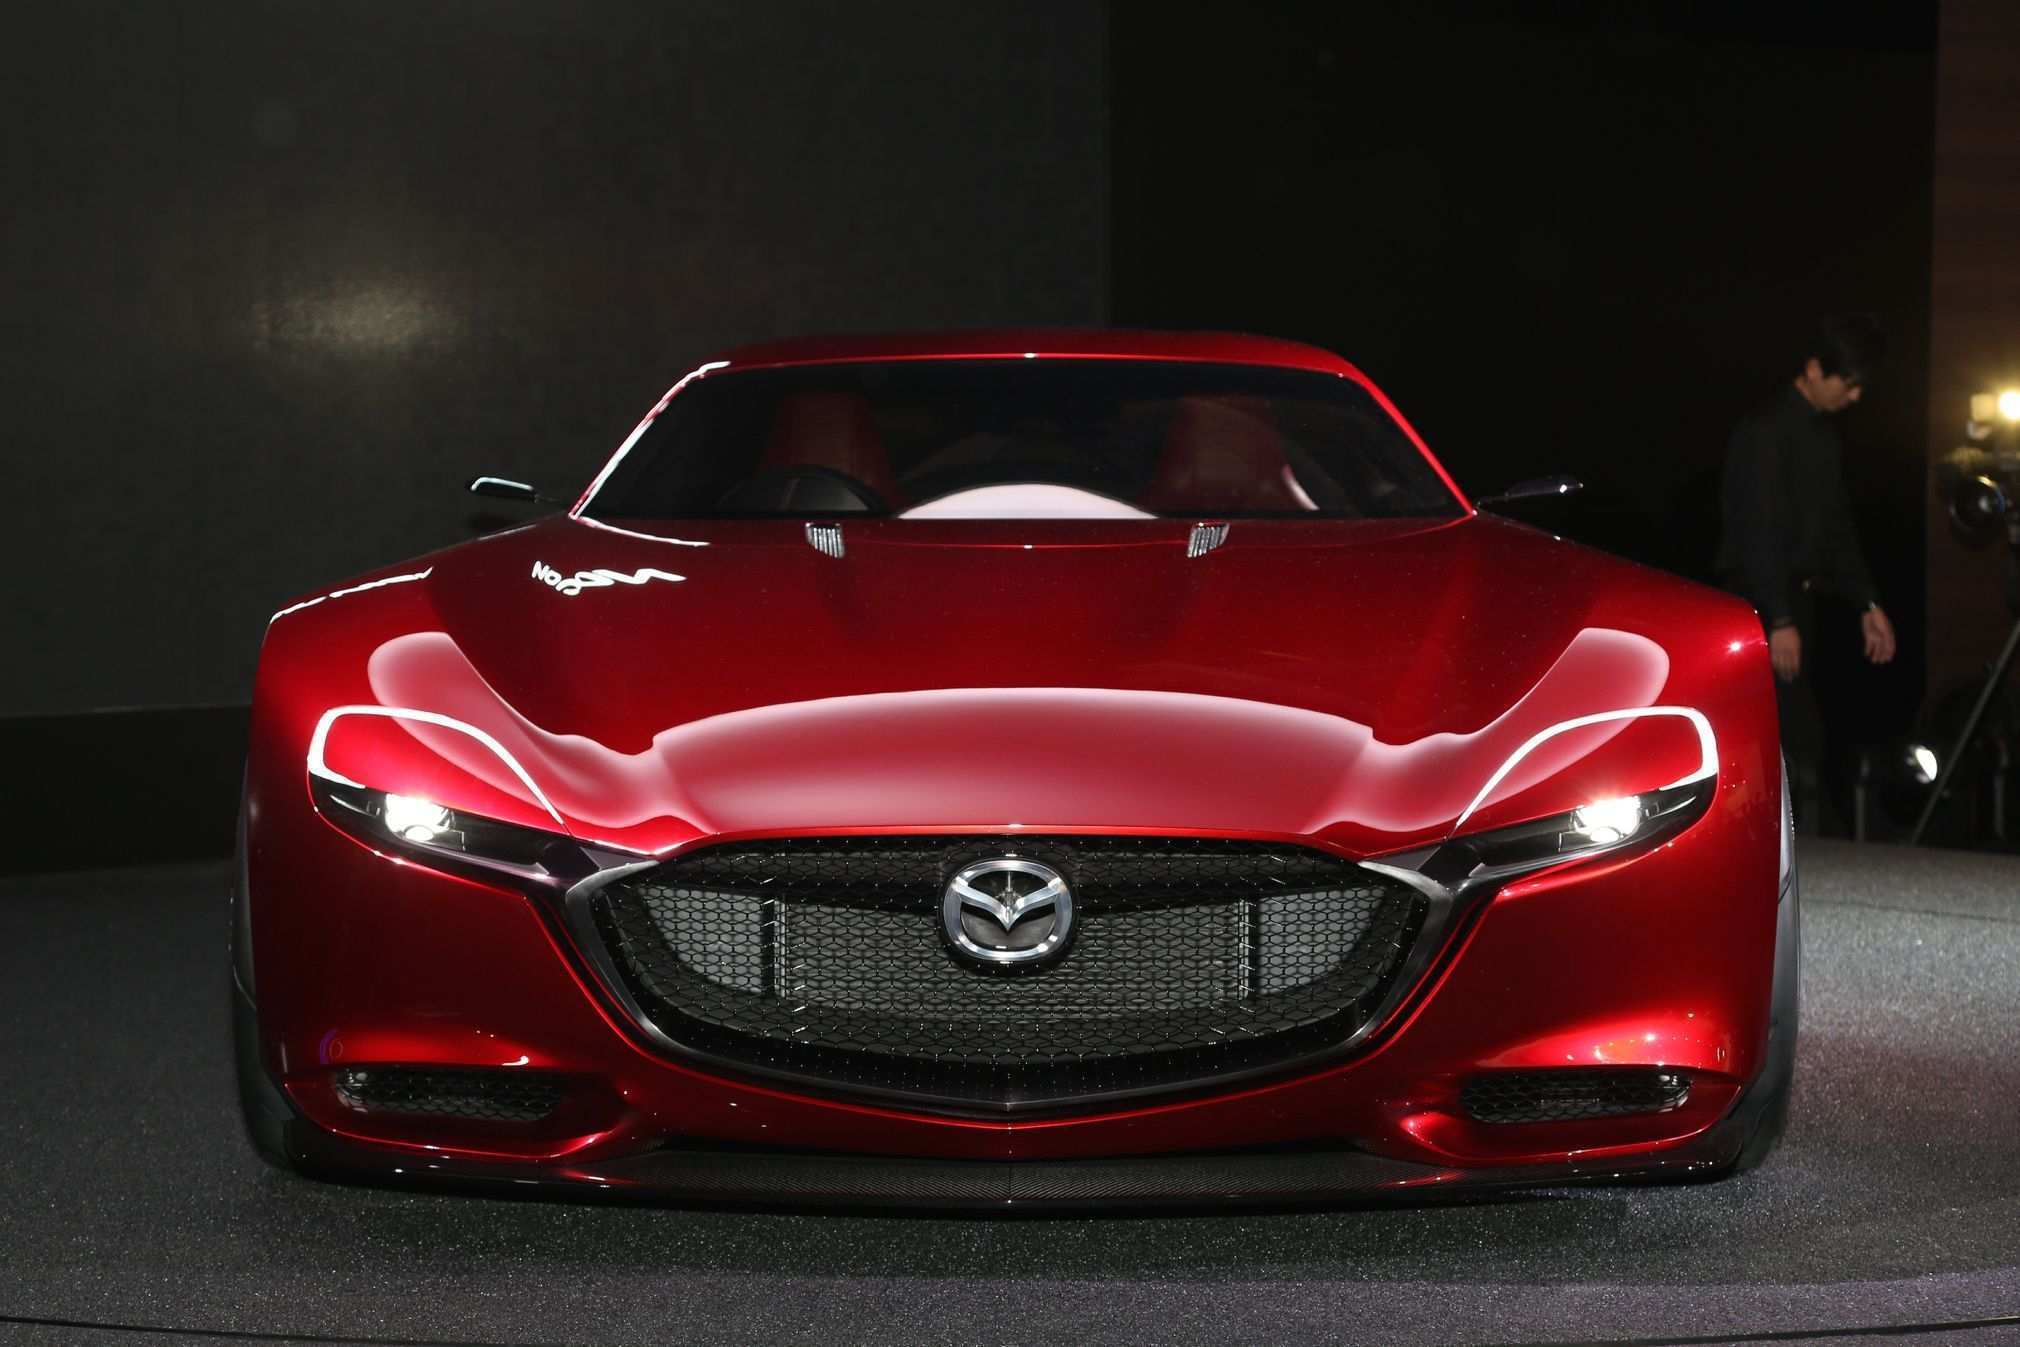 77 All New 2020 Mazda RX7s Redesign And Review